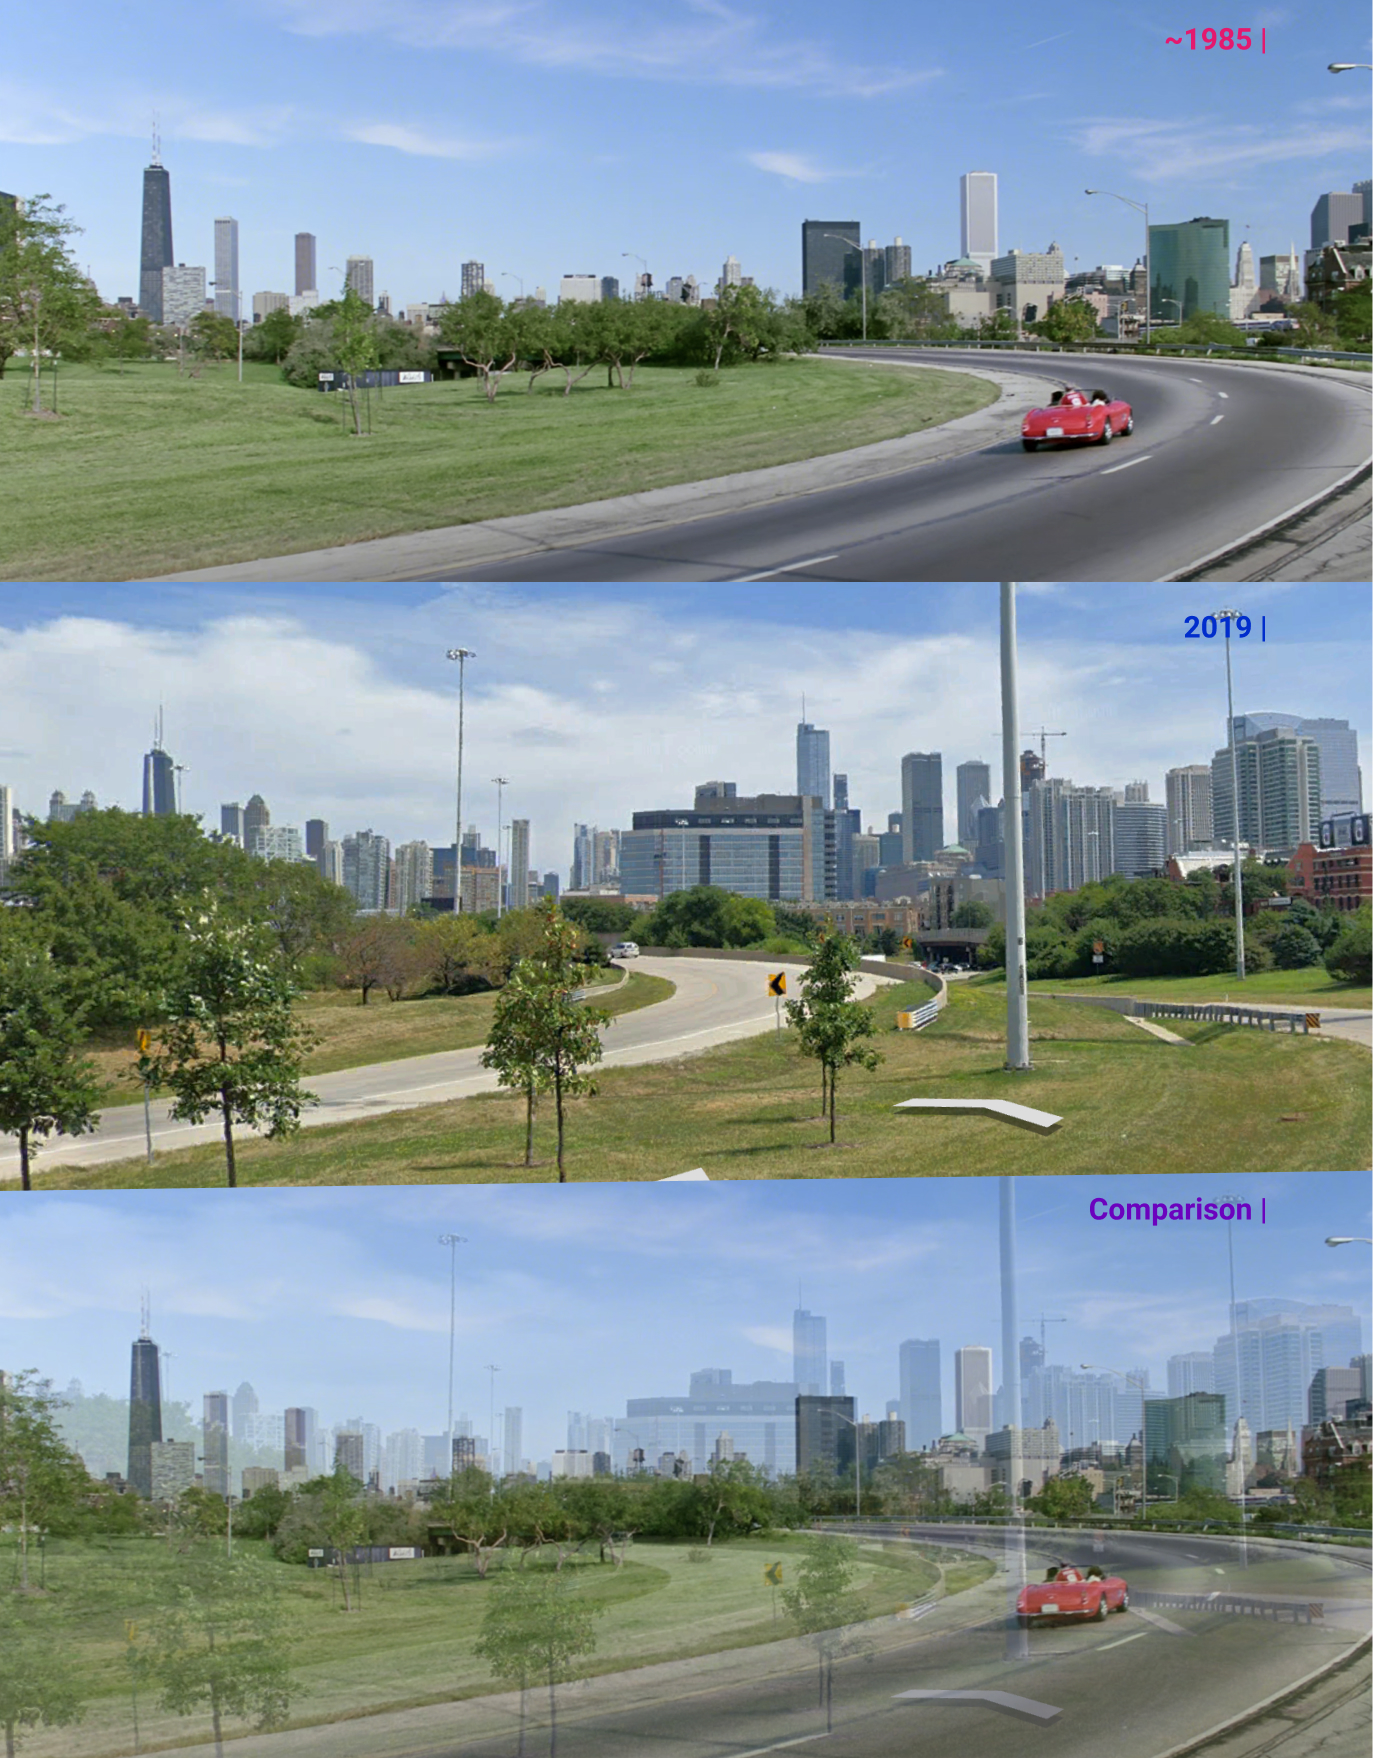 Another shot from an interchange along the Kennedy Expressway in West Town, compared to a more recent 2019 photo